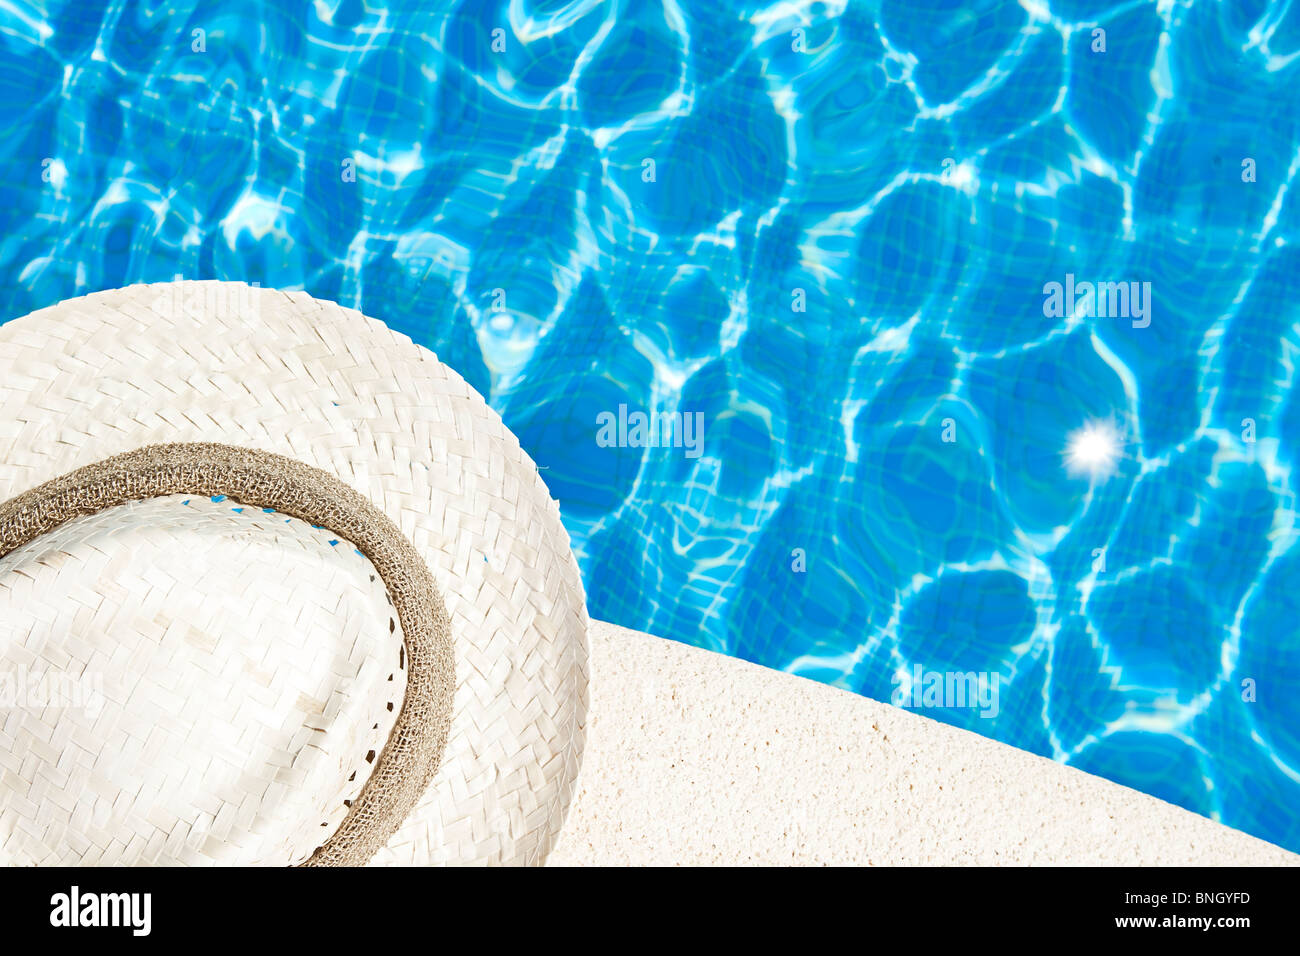 Shot of a Sunhat next to the Swimming Pool Stock Photo